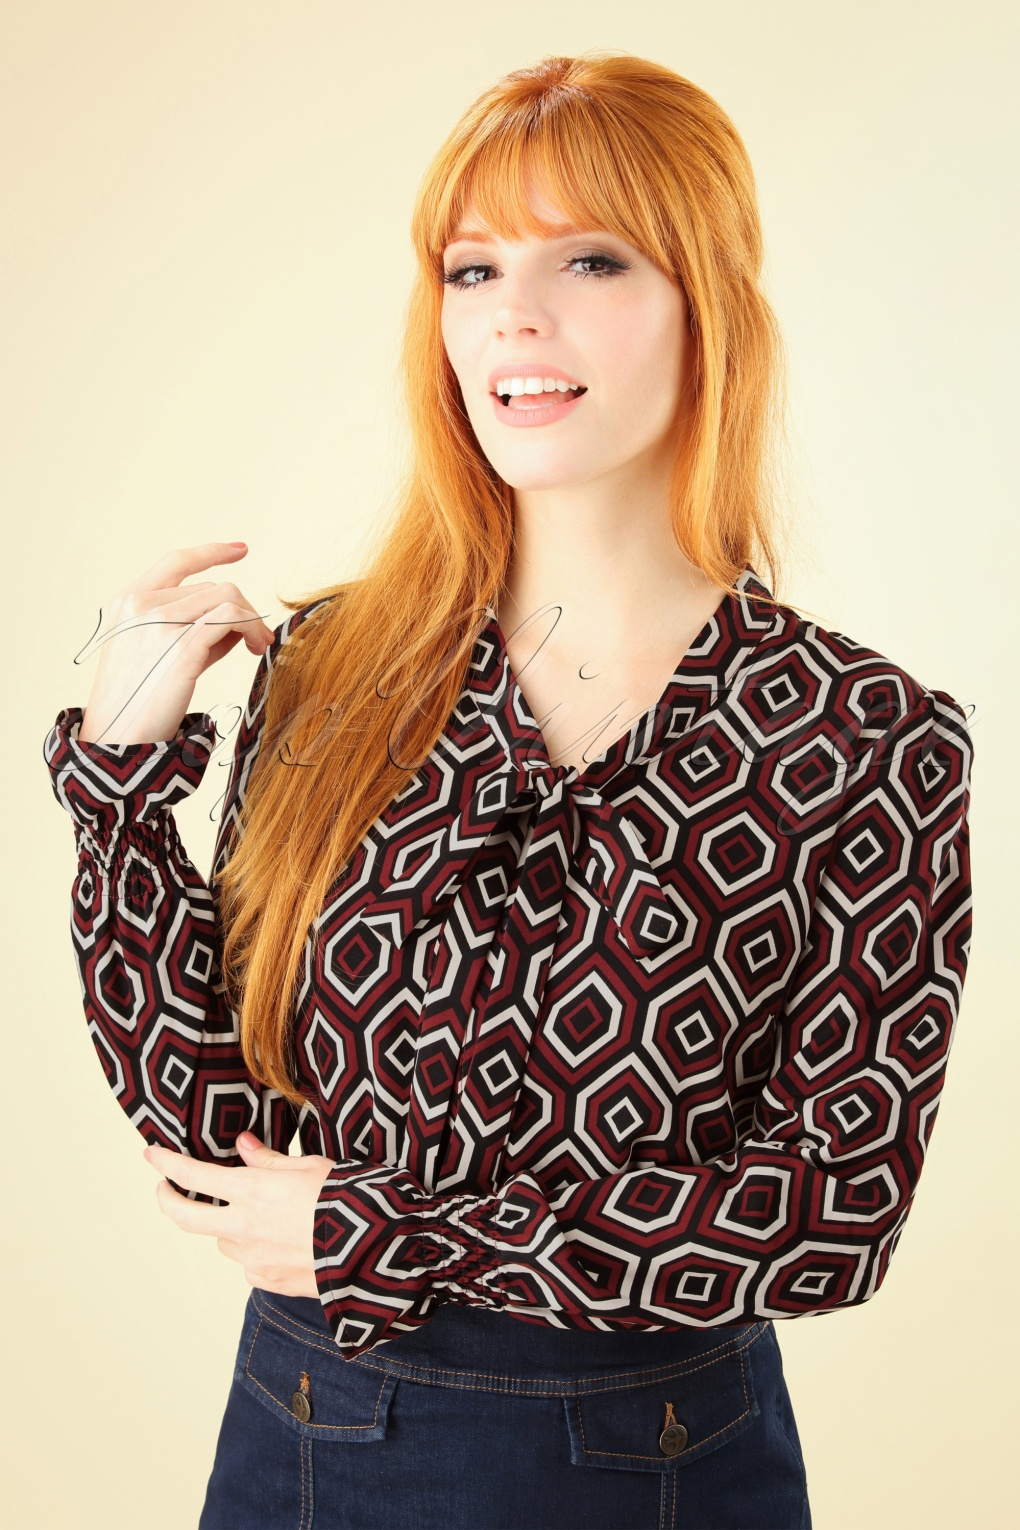 60s Shirts, T-shirt, Blouses | 70s Shirts, Tops, Vests 60s Retro Bow Blouse in Black and Red £64.98 AT vintagedancer.com